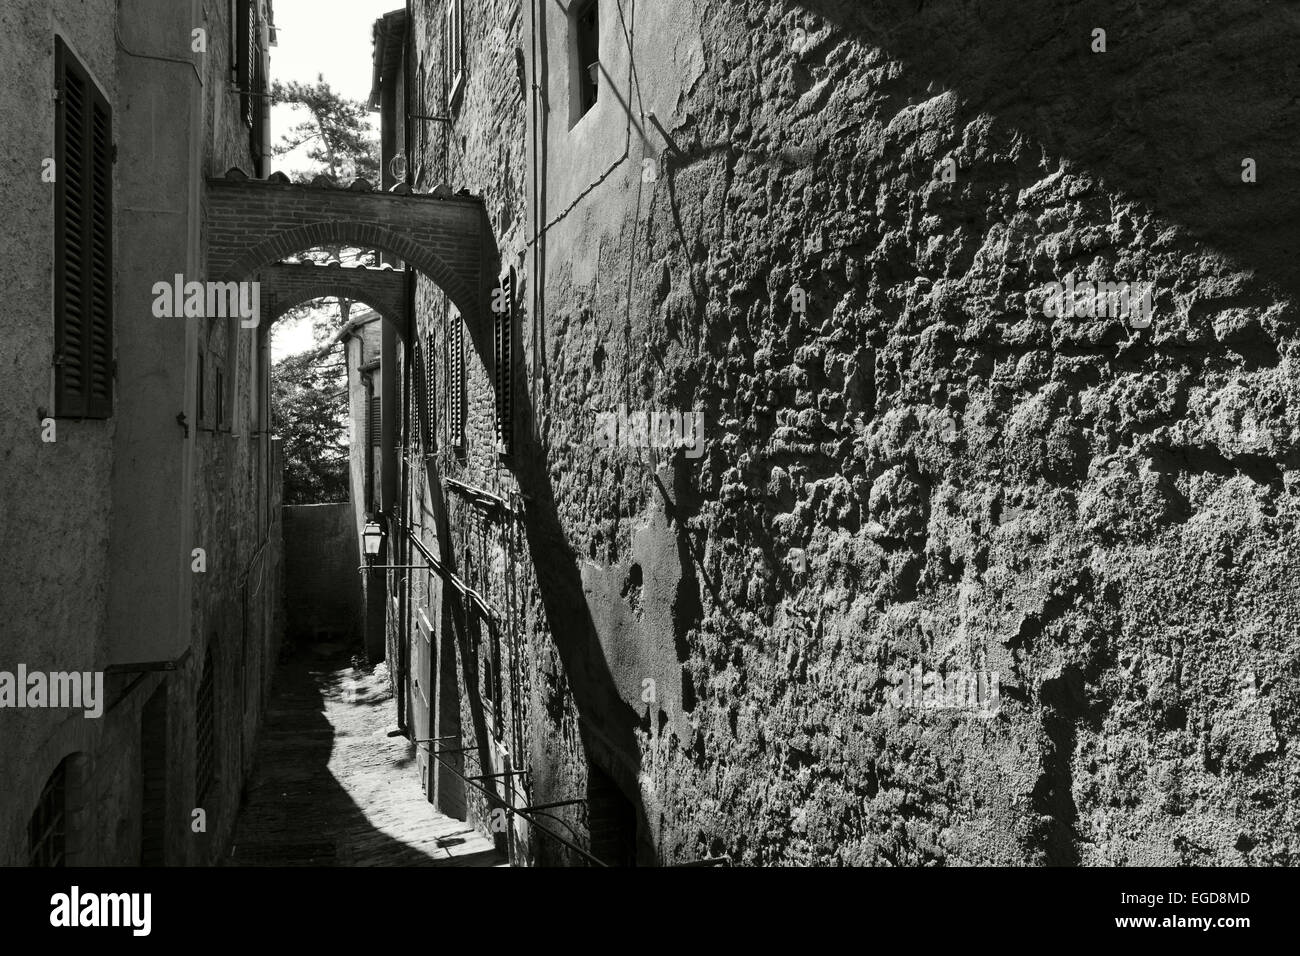 Alley, Montepulciano, hilltown, UNESCO World Heritage Site, province of Siena, Tuscany, Italy, Europe - Stock Image